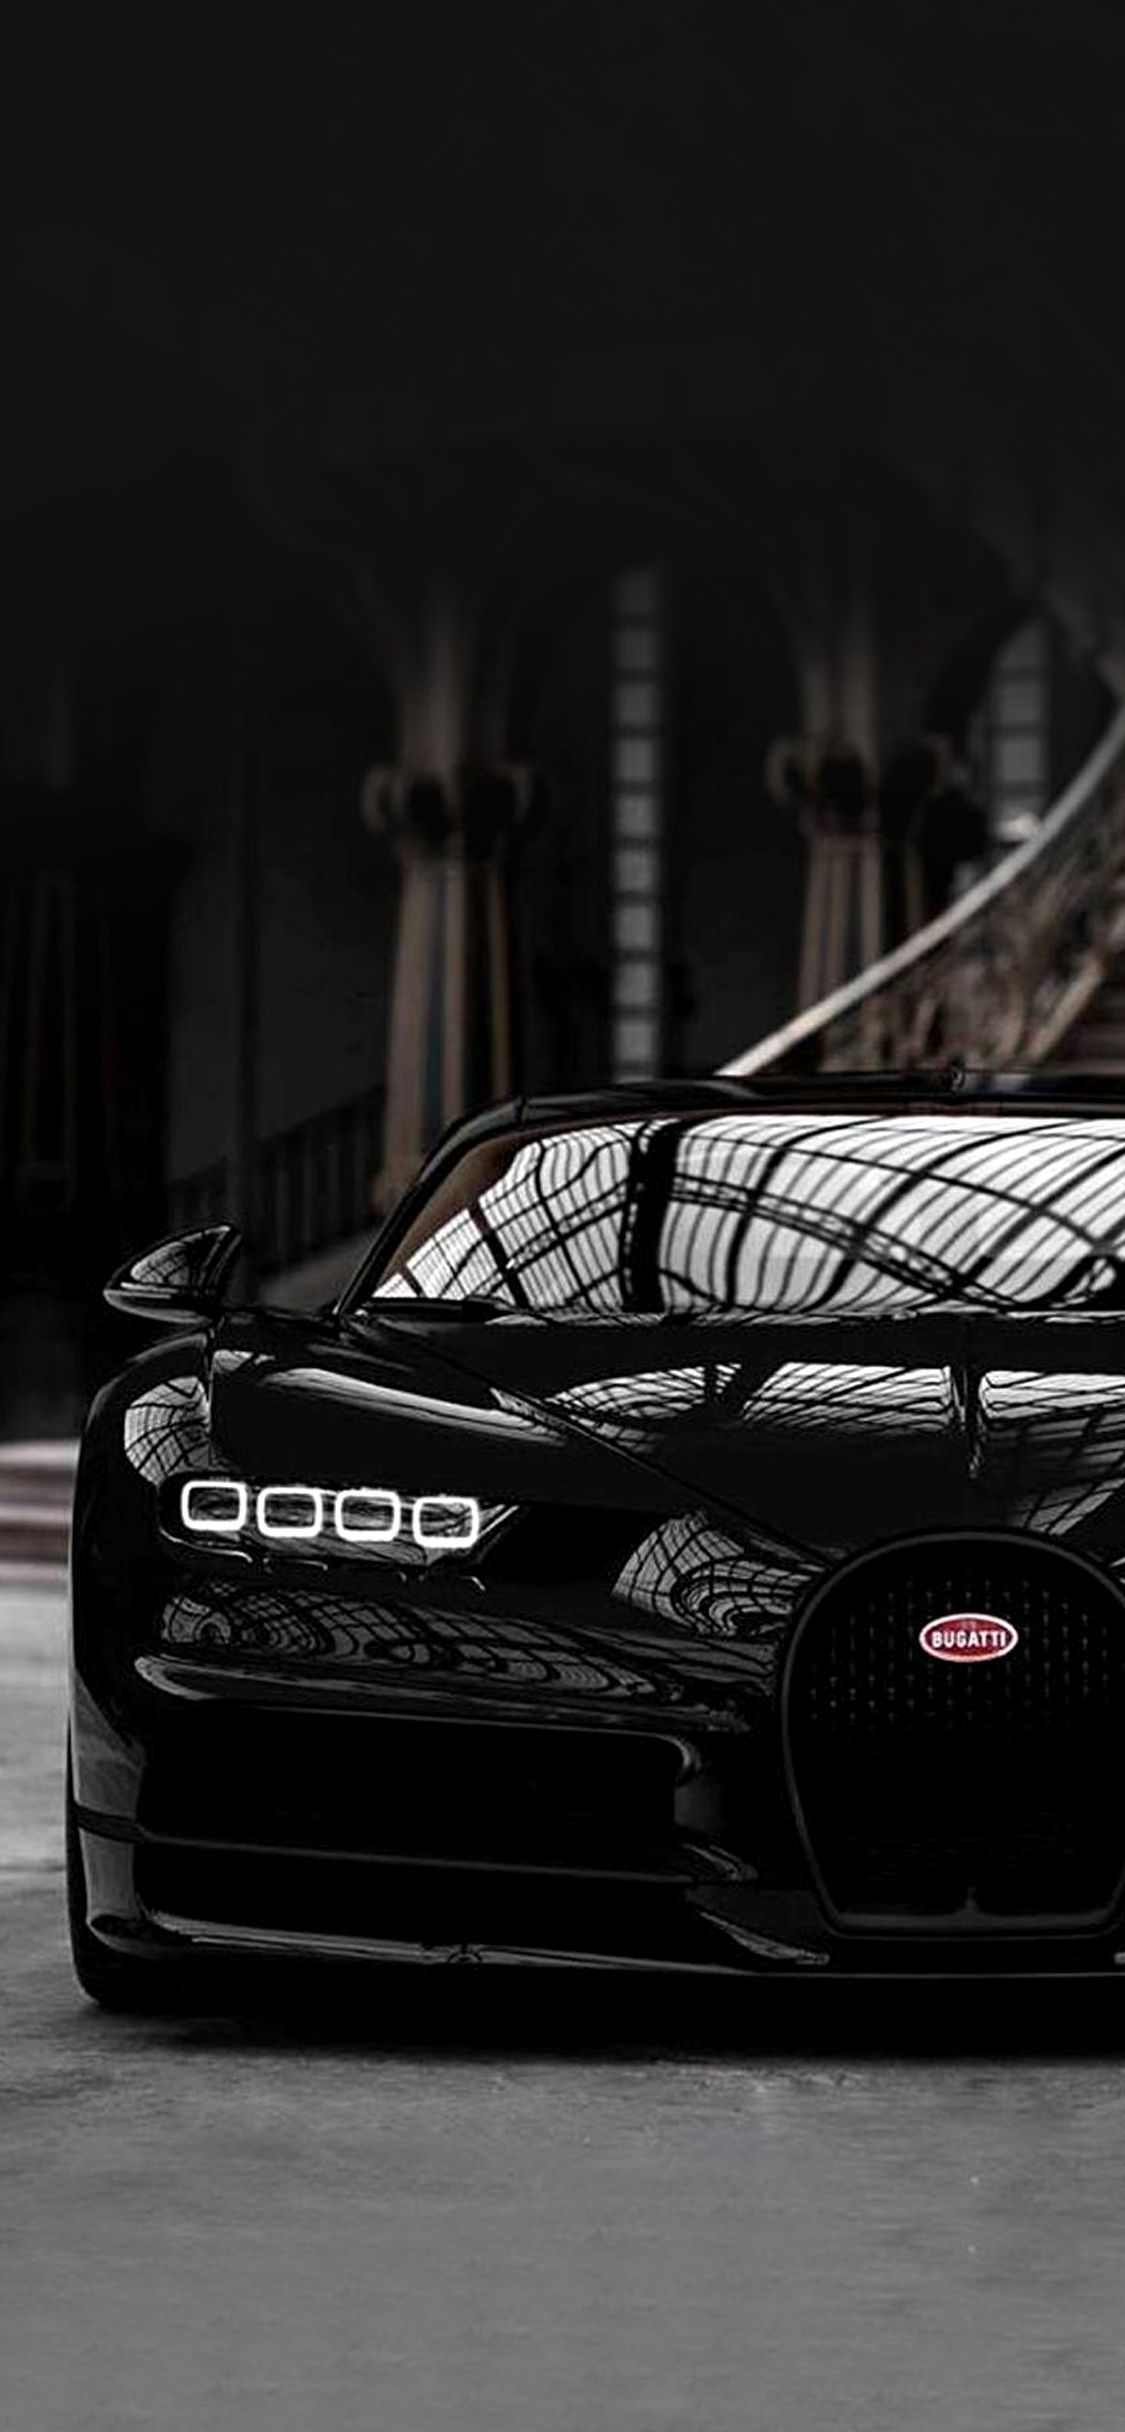 Wallpaper Collection 37 Best Free Hd Iphone Car Wallpaper Background To Download Pc Mobi In 2020 Car Iphone Wallpaper Bugatti Wallpapers Bentley Wallpaper